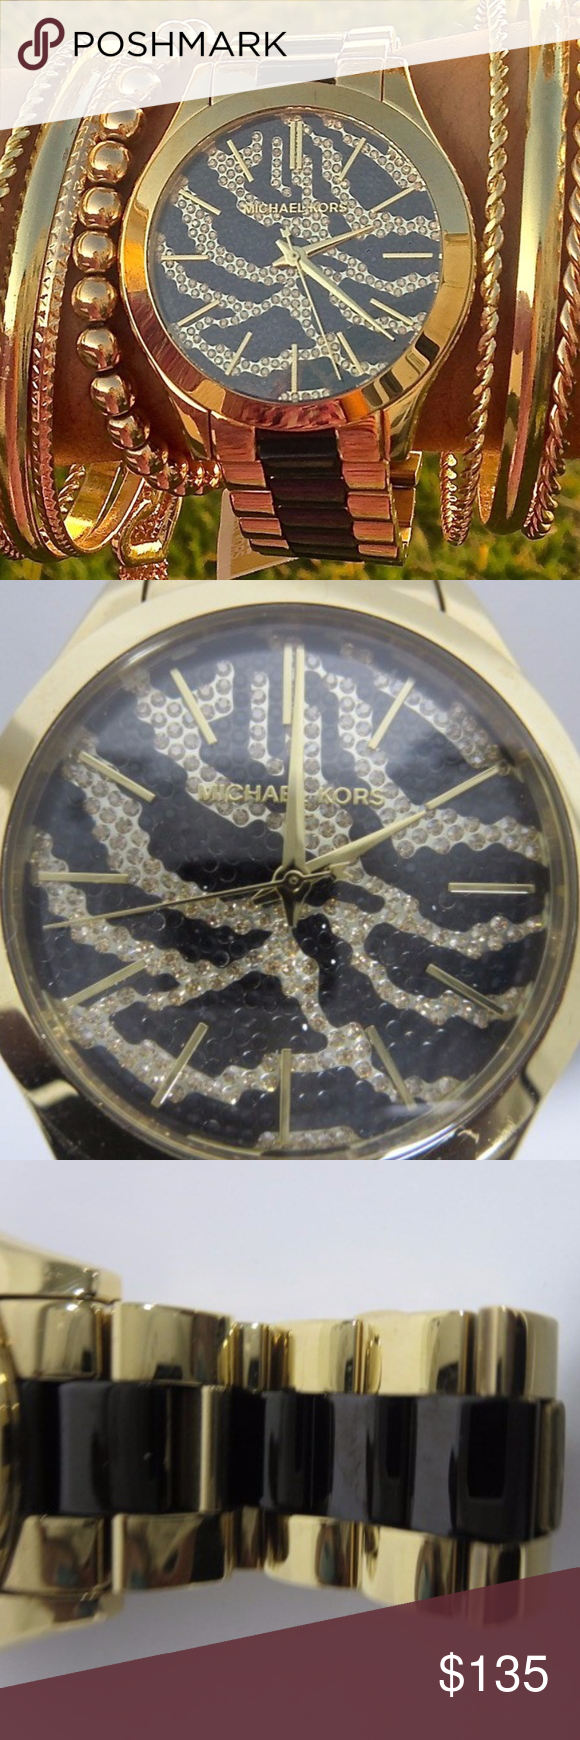 3e81f5d2155a MICHAEL KORS Zebra Crystal Pave Dial Runway Watch Brand new with gift box  MK s Runway Zebra